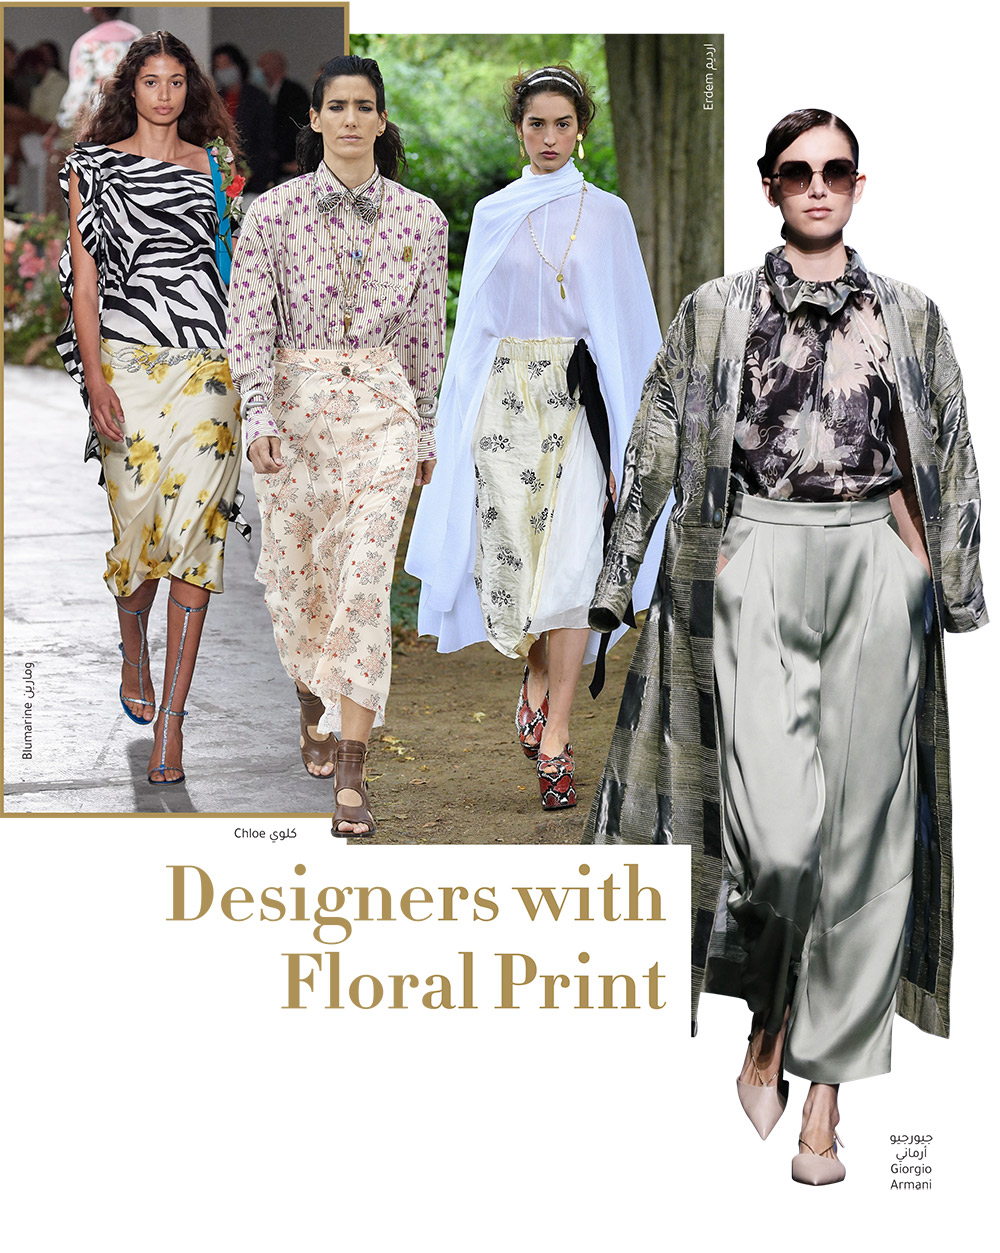 Designers with Floral Print